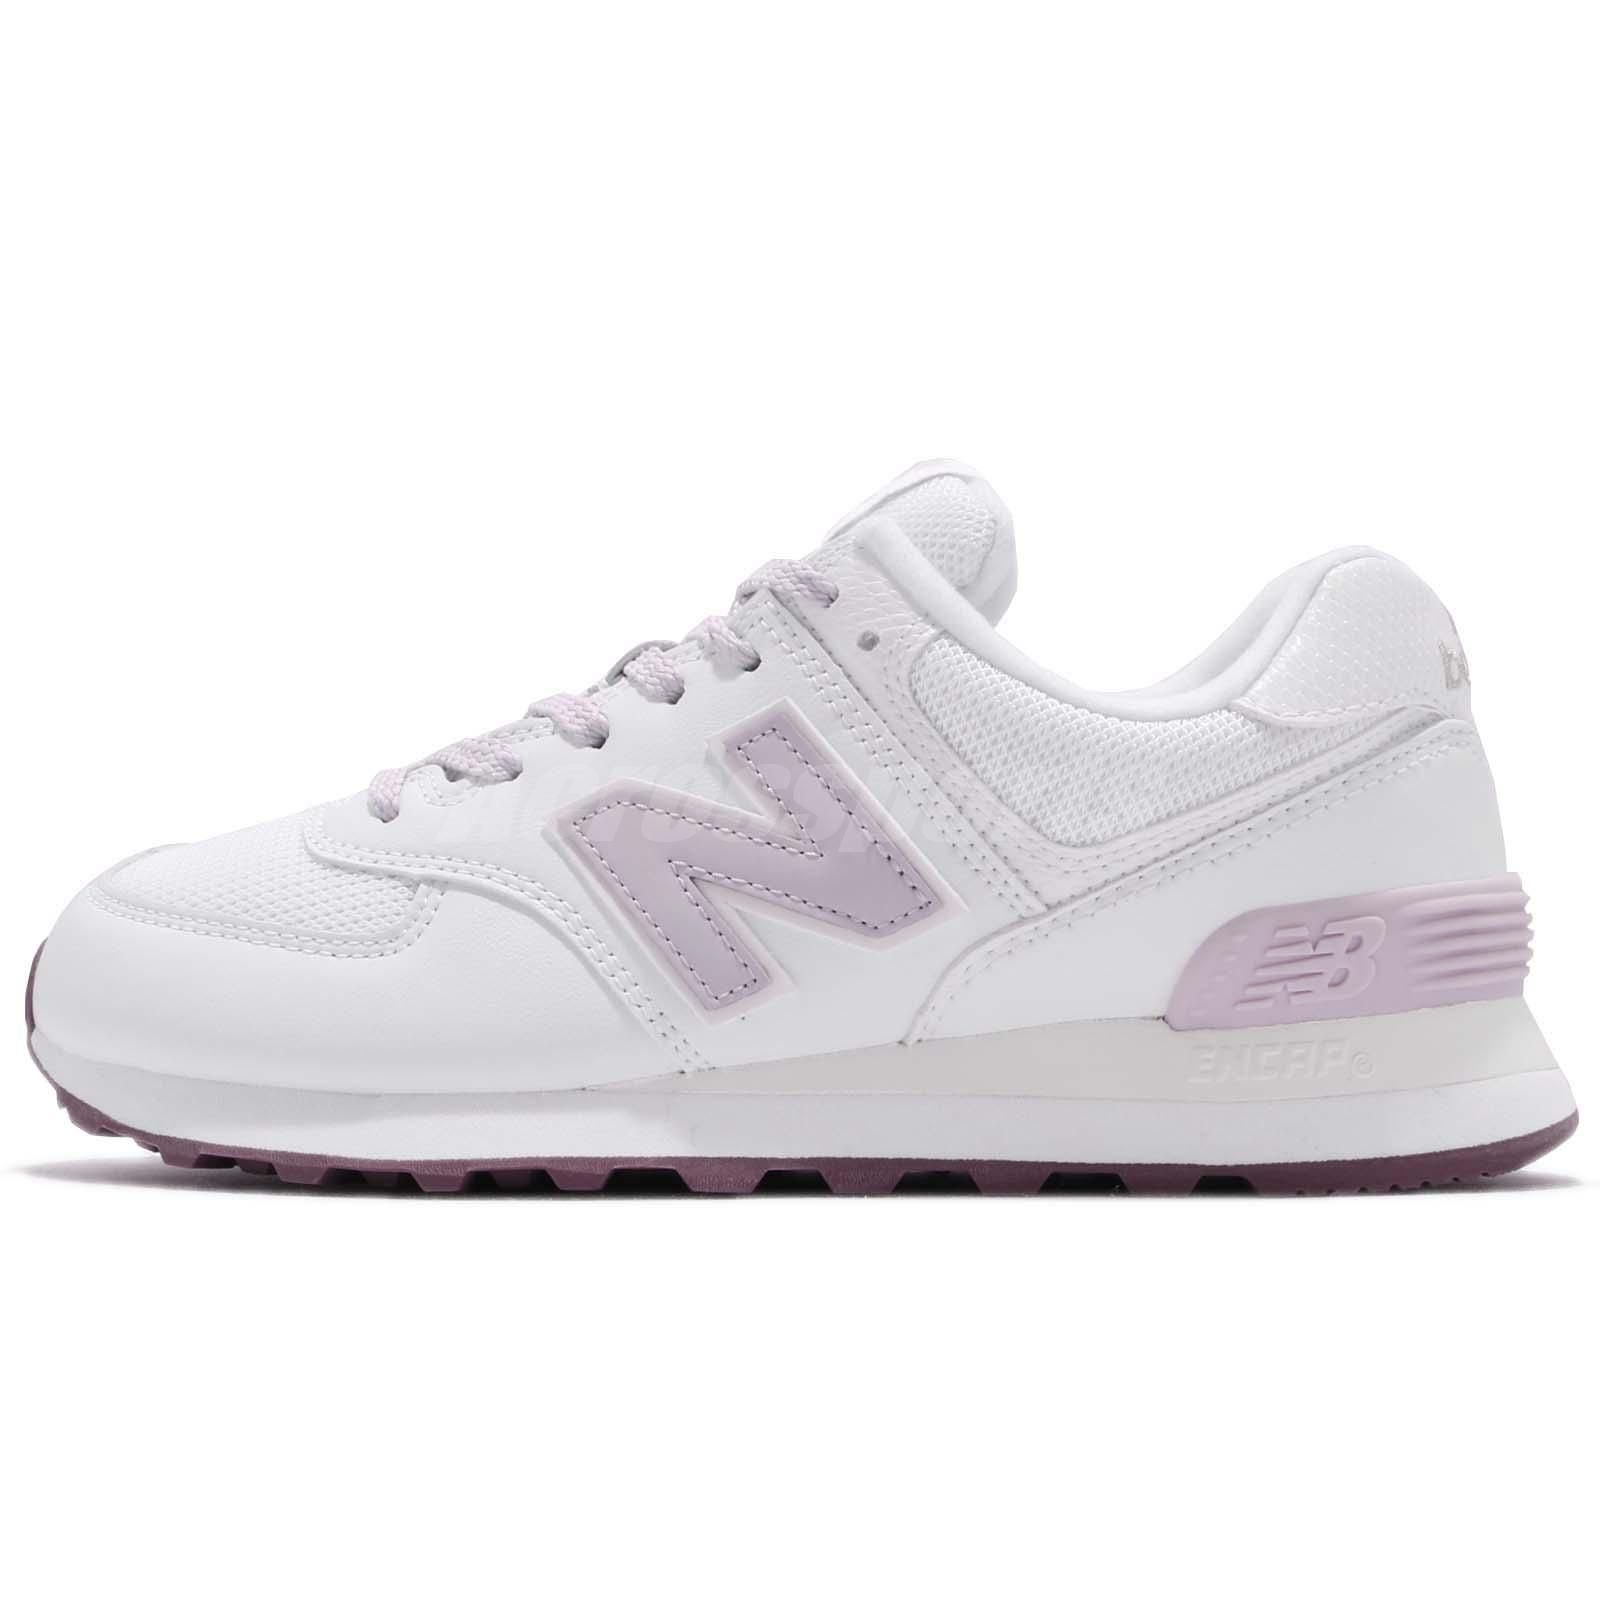 timeless design fb34a ec3ec New Balance WL574SF B 574 White Purple Women Running Shoes Sneakers WL574SFB